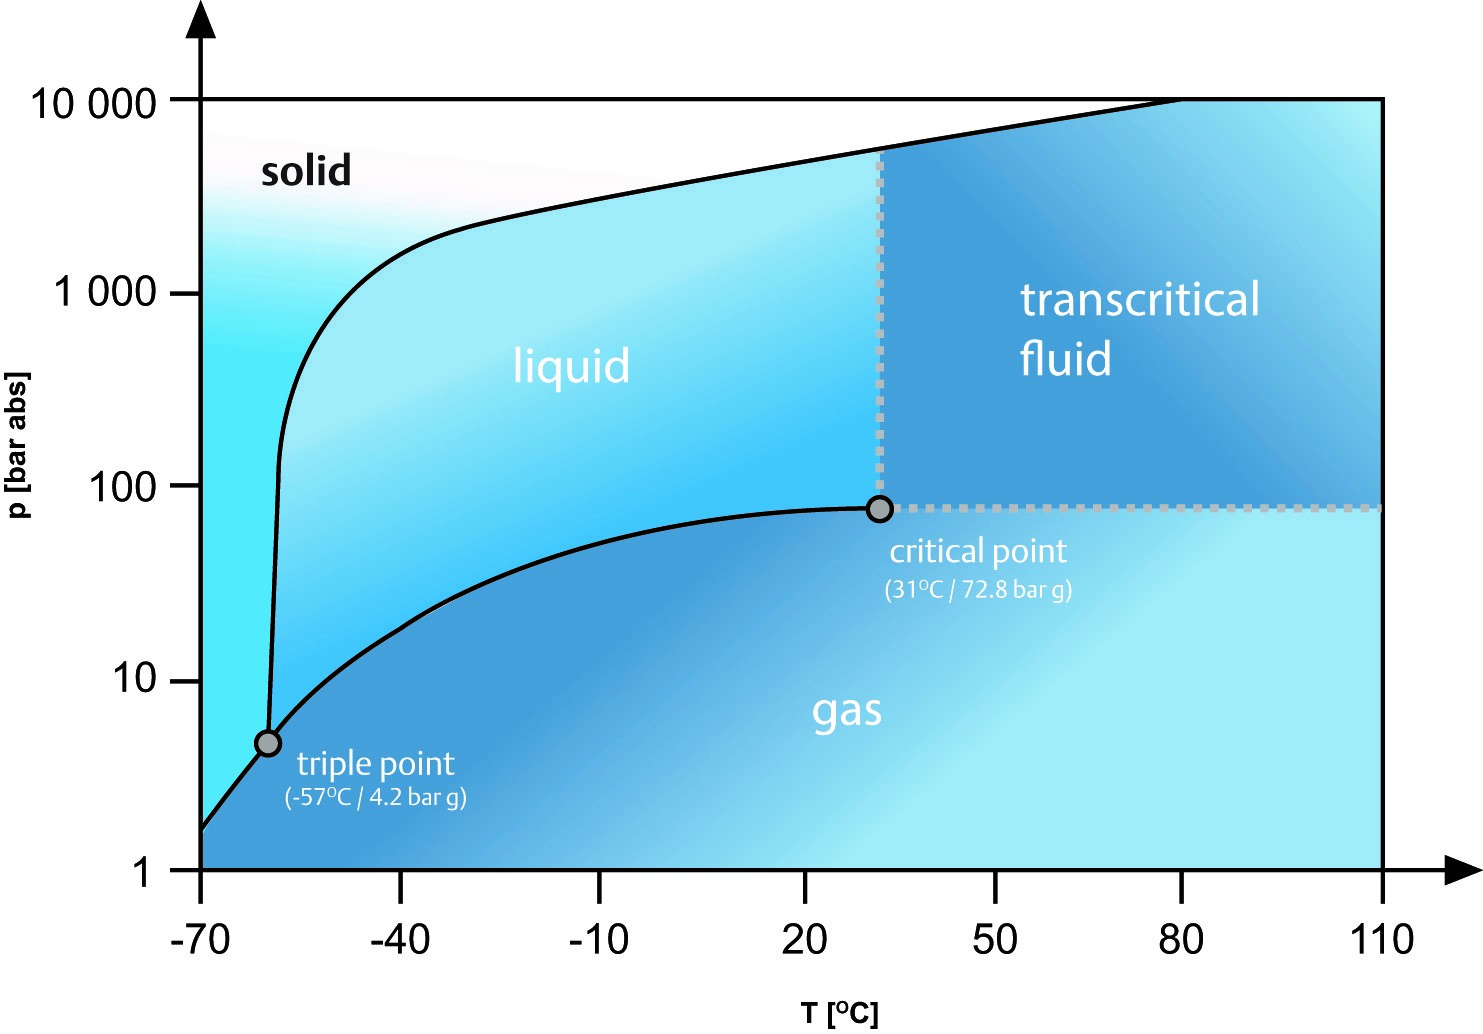 co2 as a refrigerant properties of r744 climate conversations rh emersonclimateconversations com Supercritical CO2 Phase Diagram CO2 Phase Change Chart